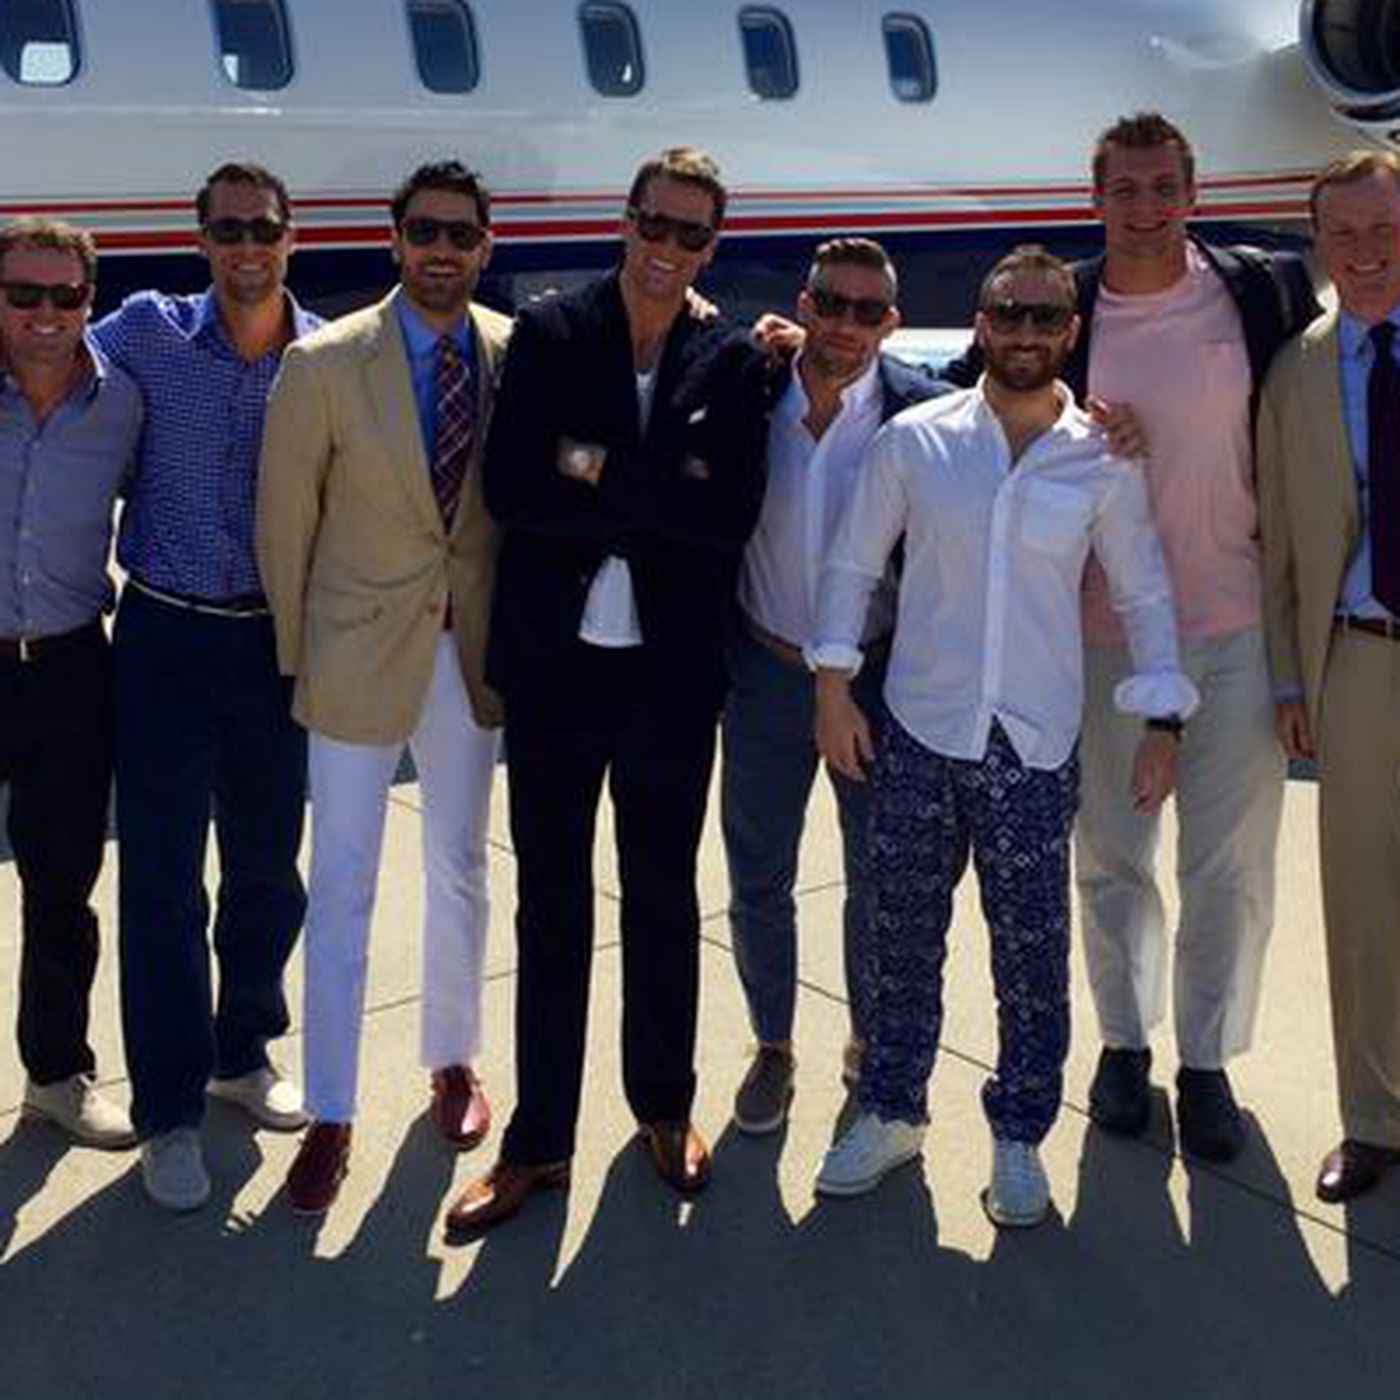 The Patriots are bro-ing out at the Kentucky Derby